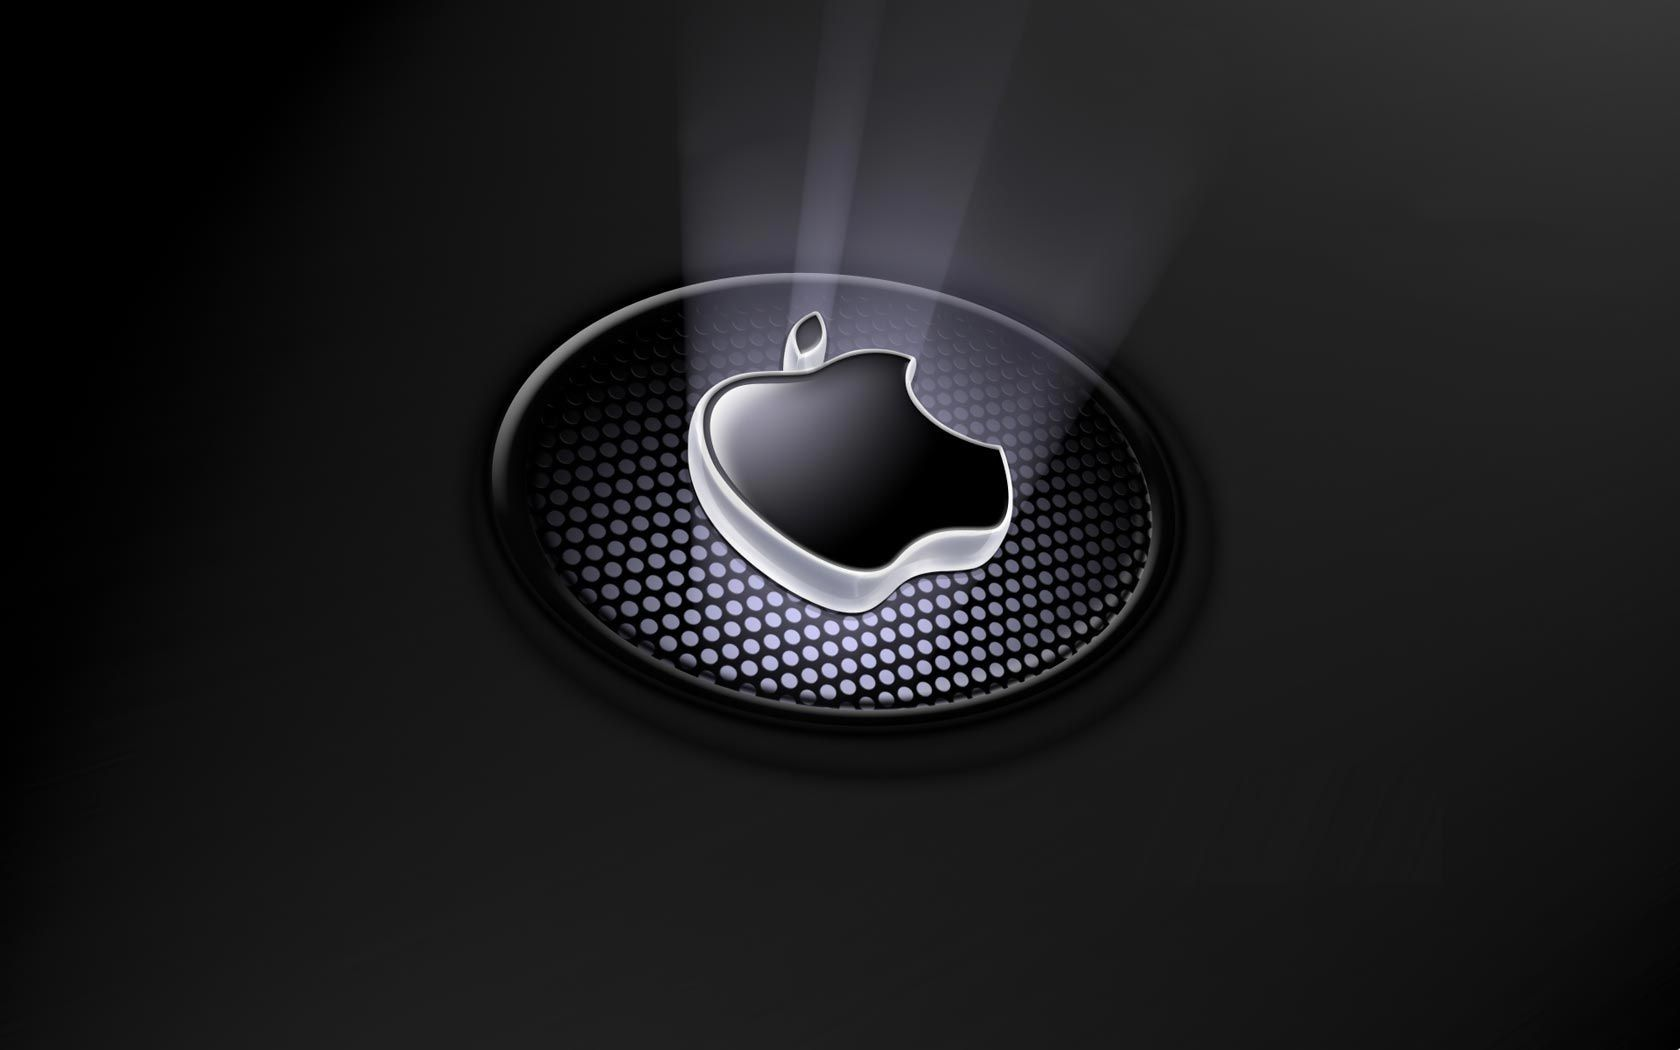 Hd Apple Wallpapers Hd Wallpapers Backgrounds Of Your Choice Hd Apple Wallpapers Apple Logo Apple Logo Wallpaper